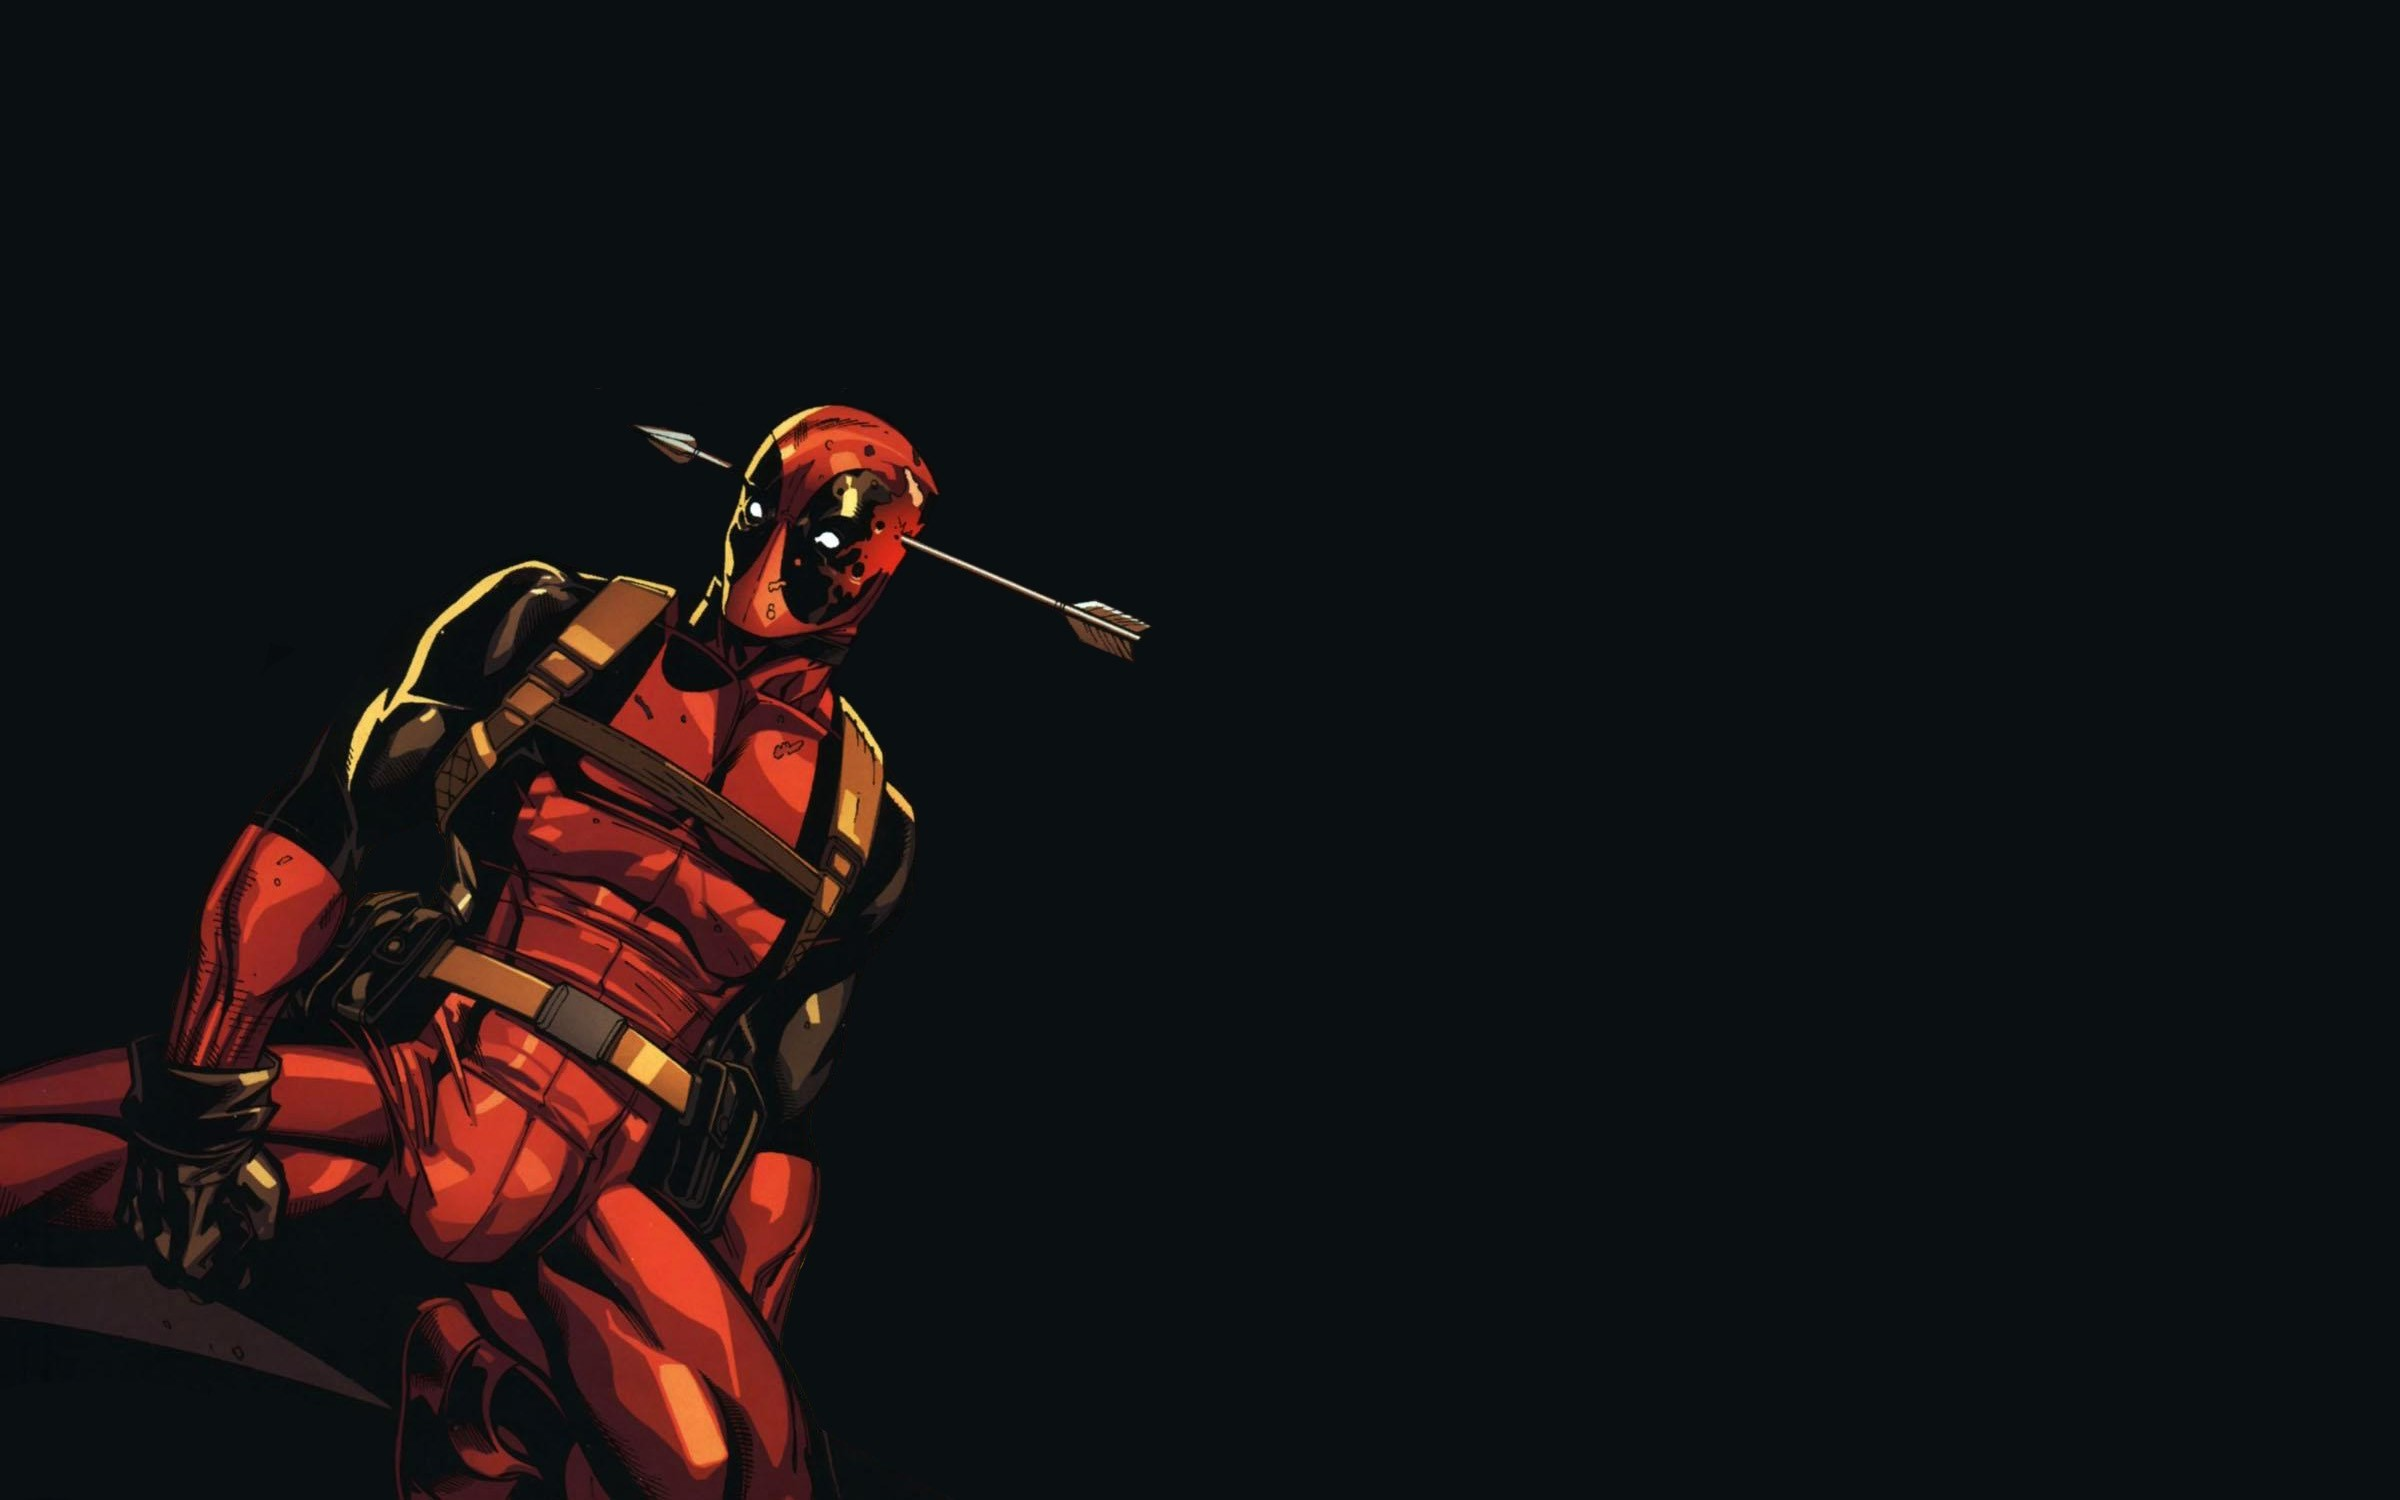 1920x1080 Movie Wallpapers For Deadpool Wallpaper 1080x1920px